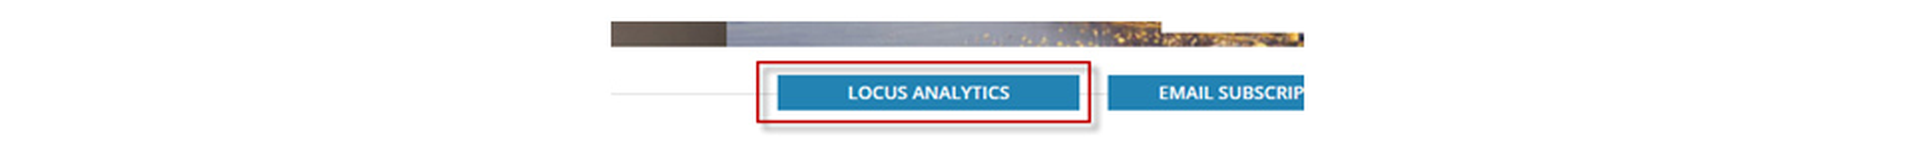 Analytics suite